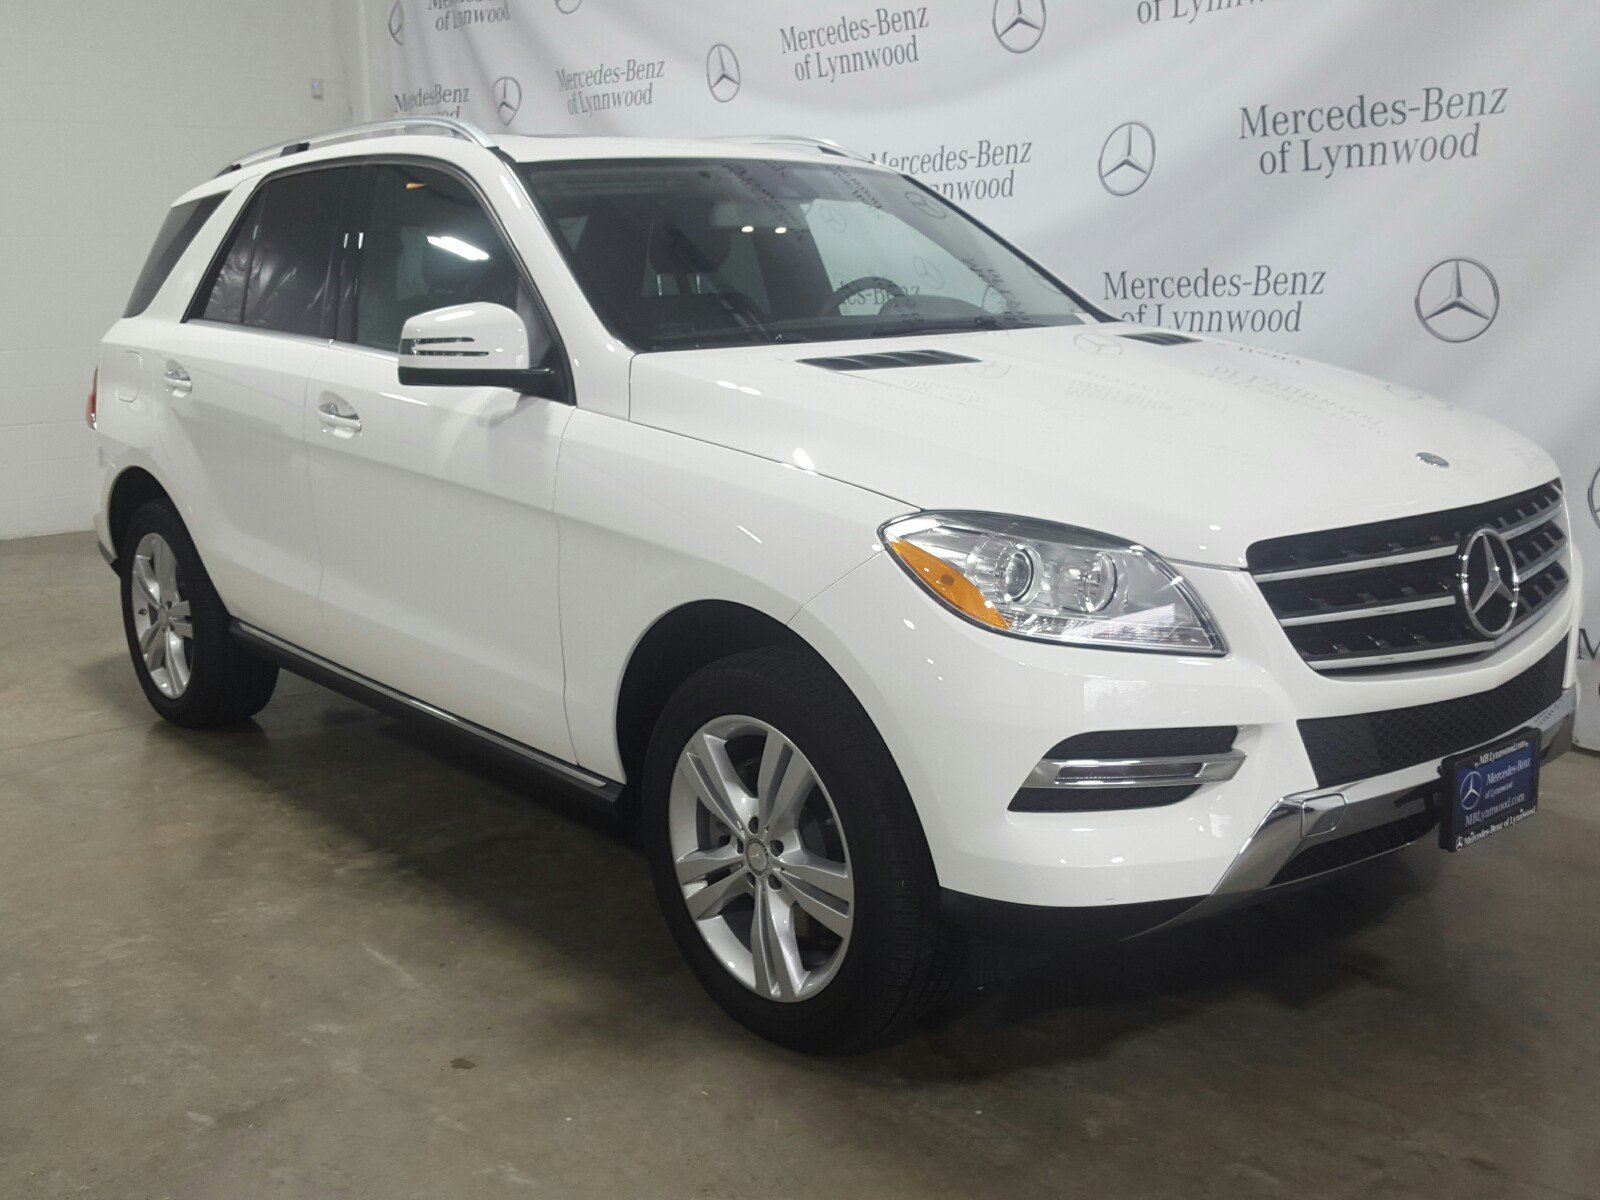 Pre Owned 2015 Mercedes Benz M Class ML 350 4MATIC SUV in Lynnwood